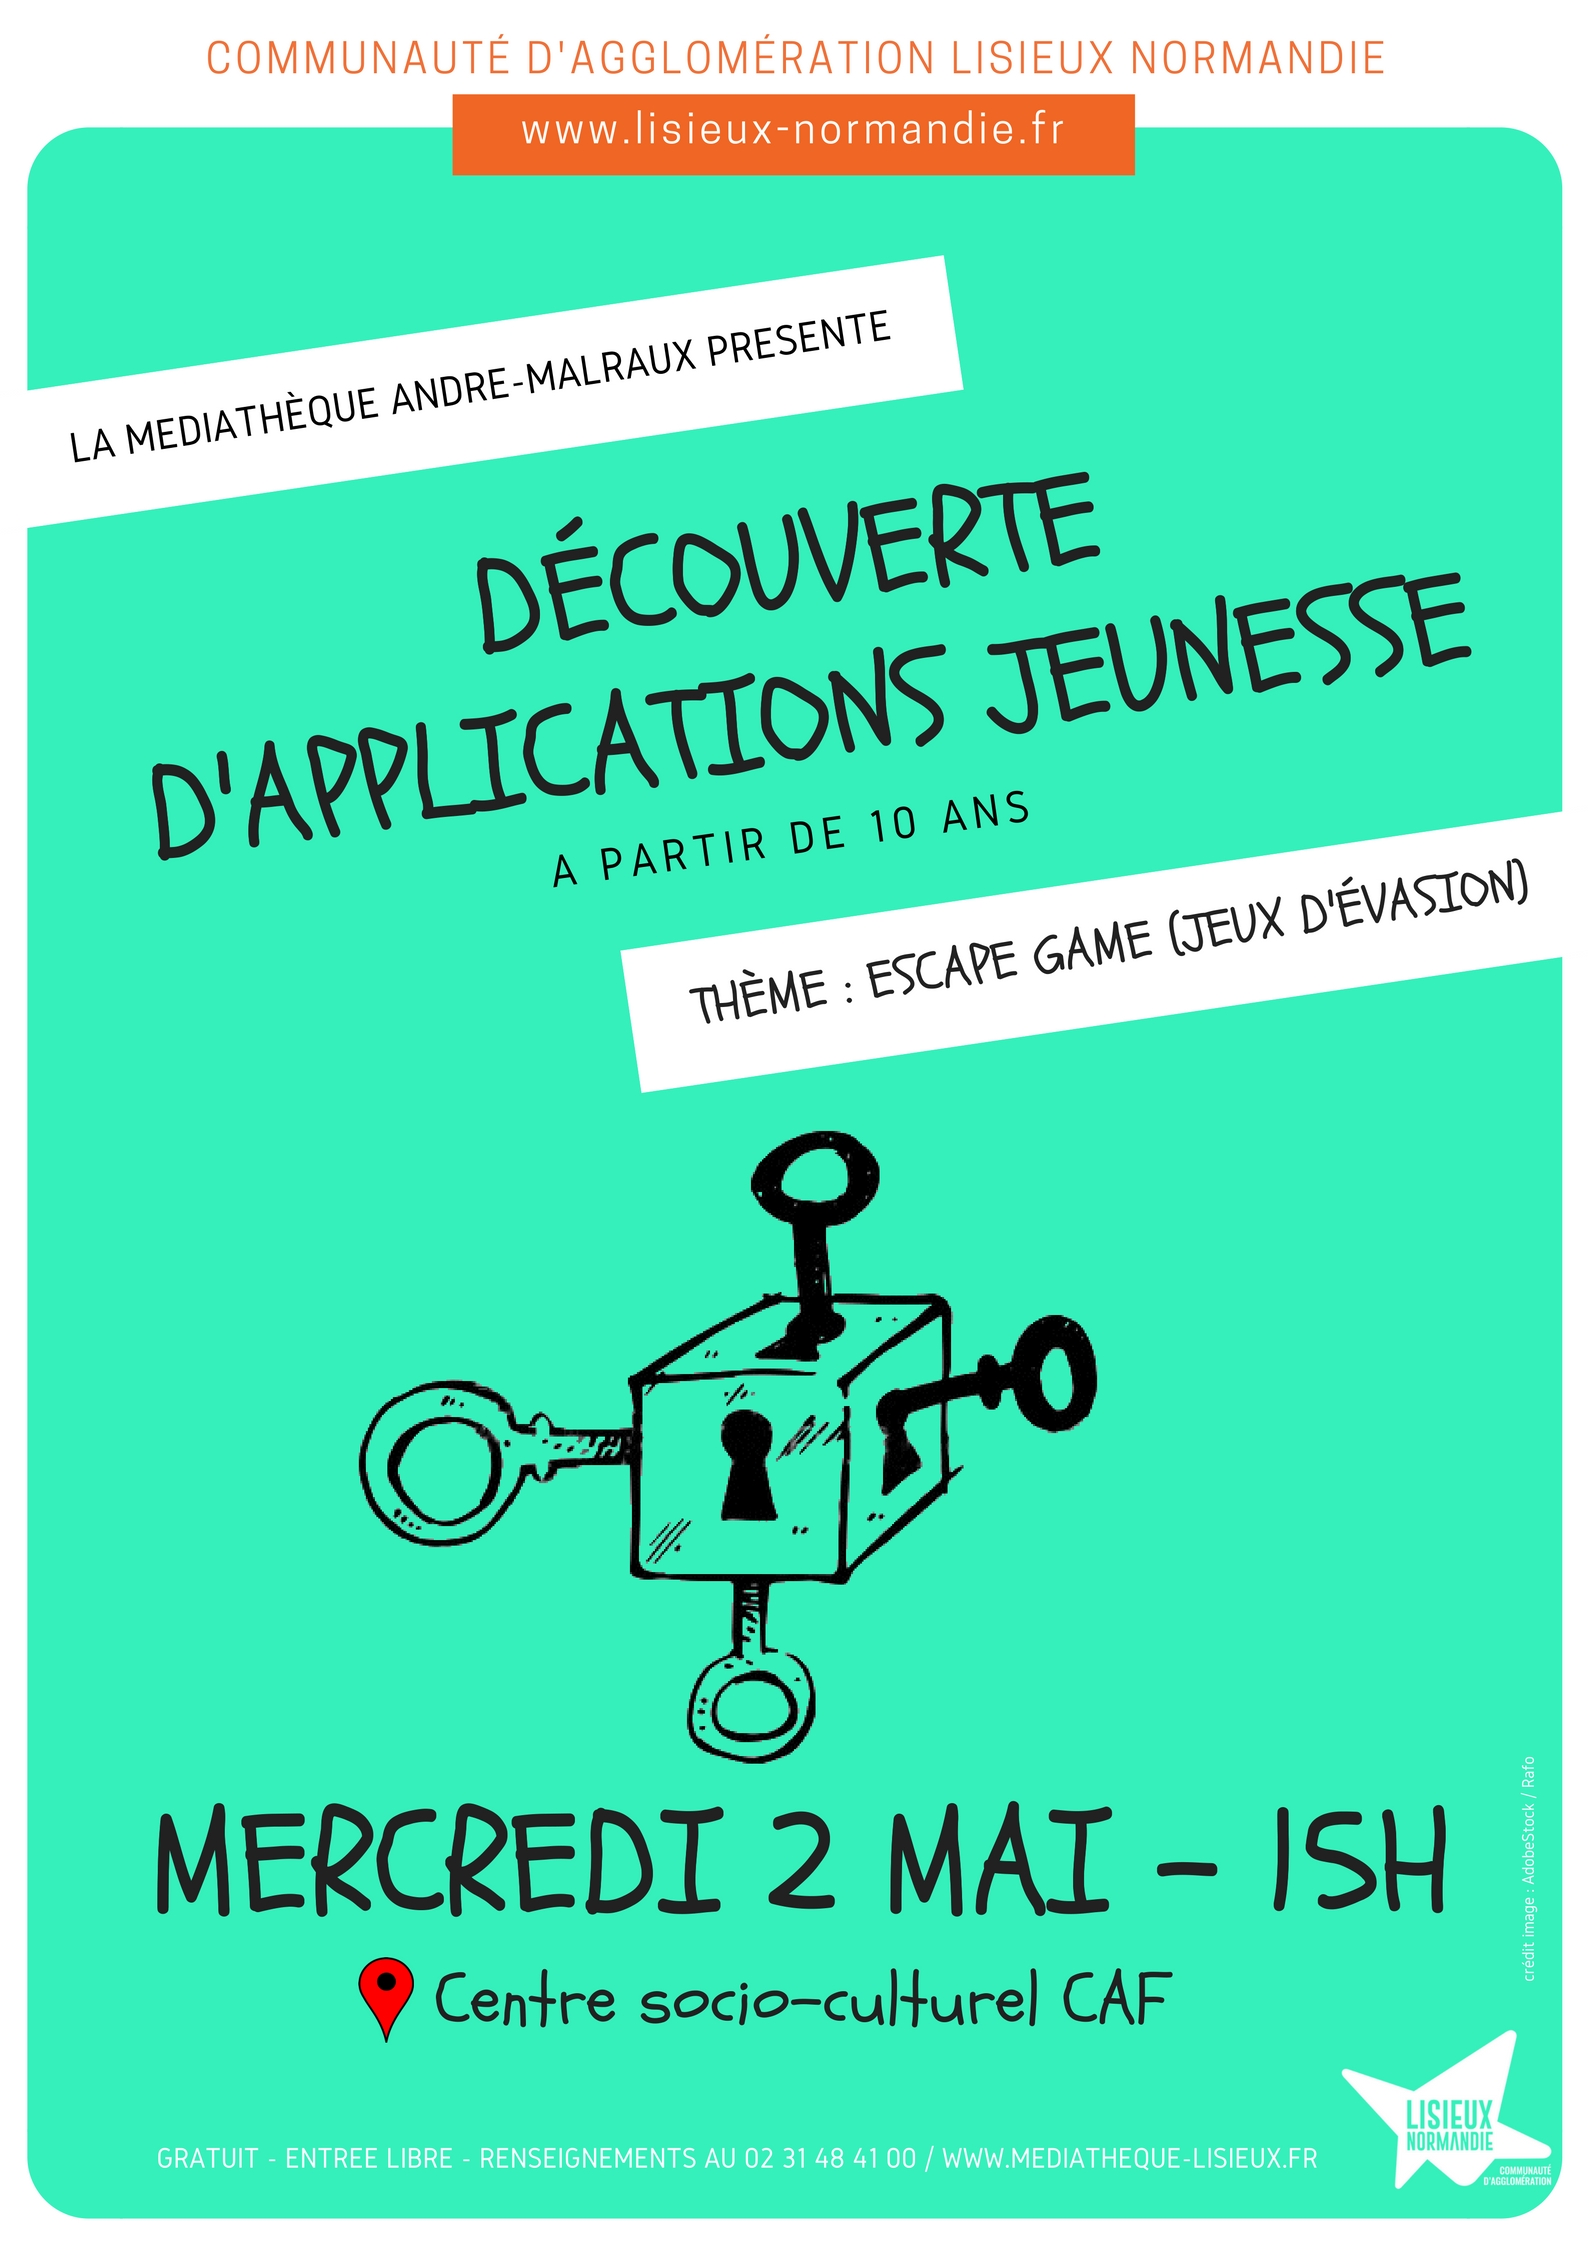 decouverte dapplis jeunesse 2 mai